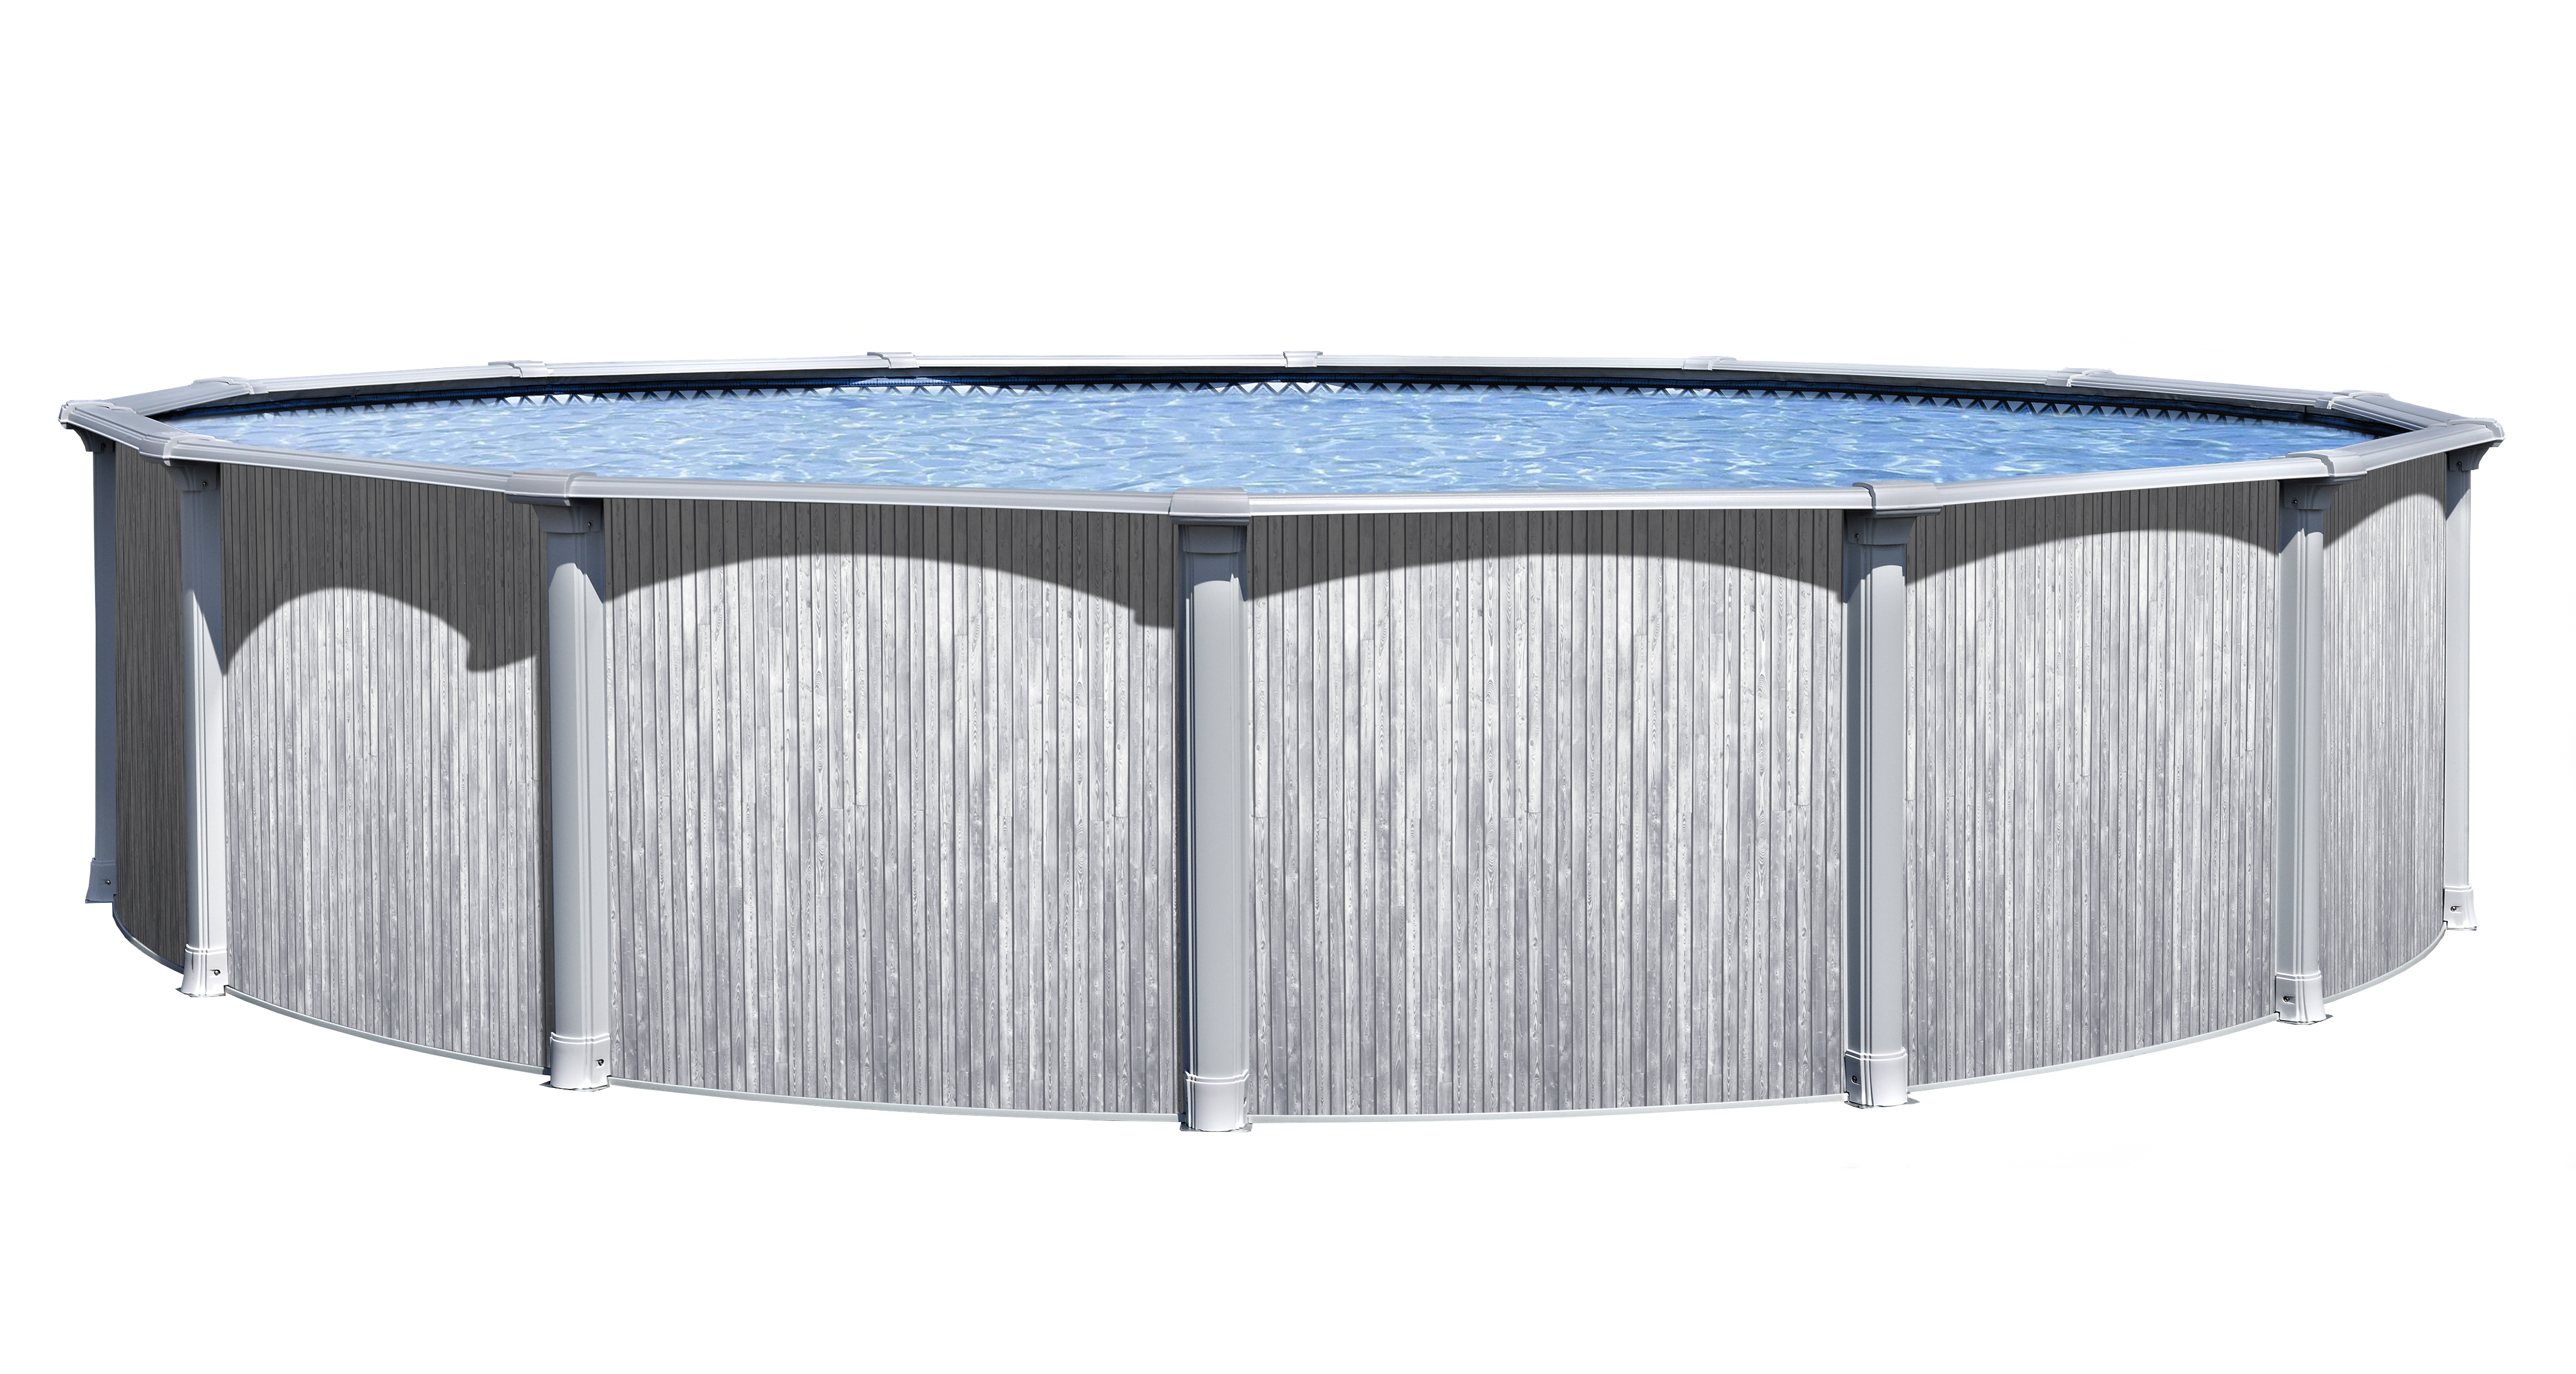 The Summerfield Above Ground Pool Package Installed